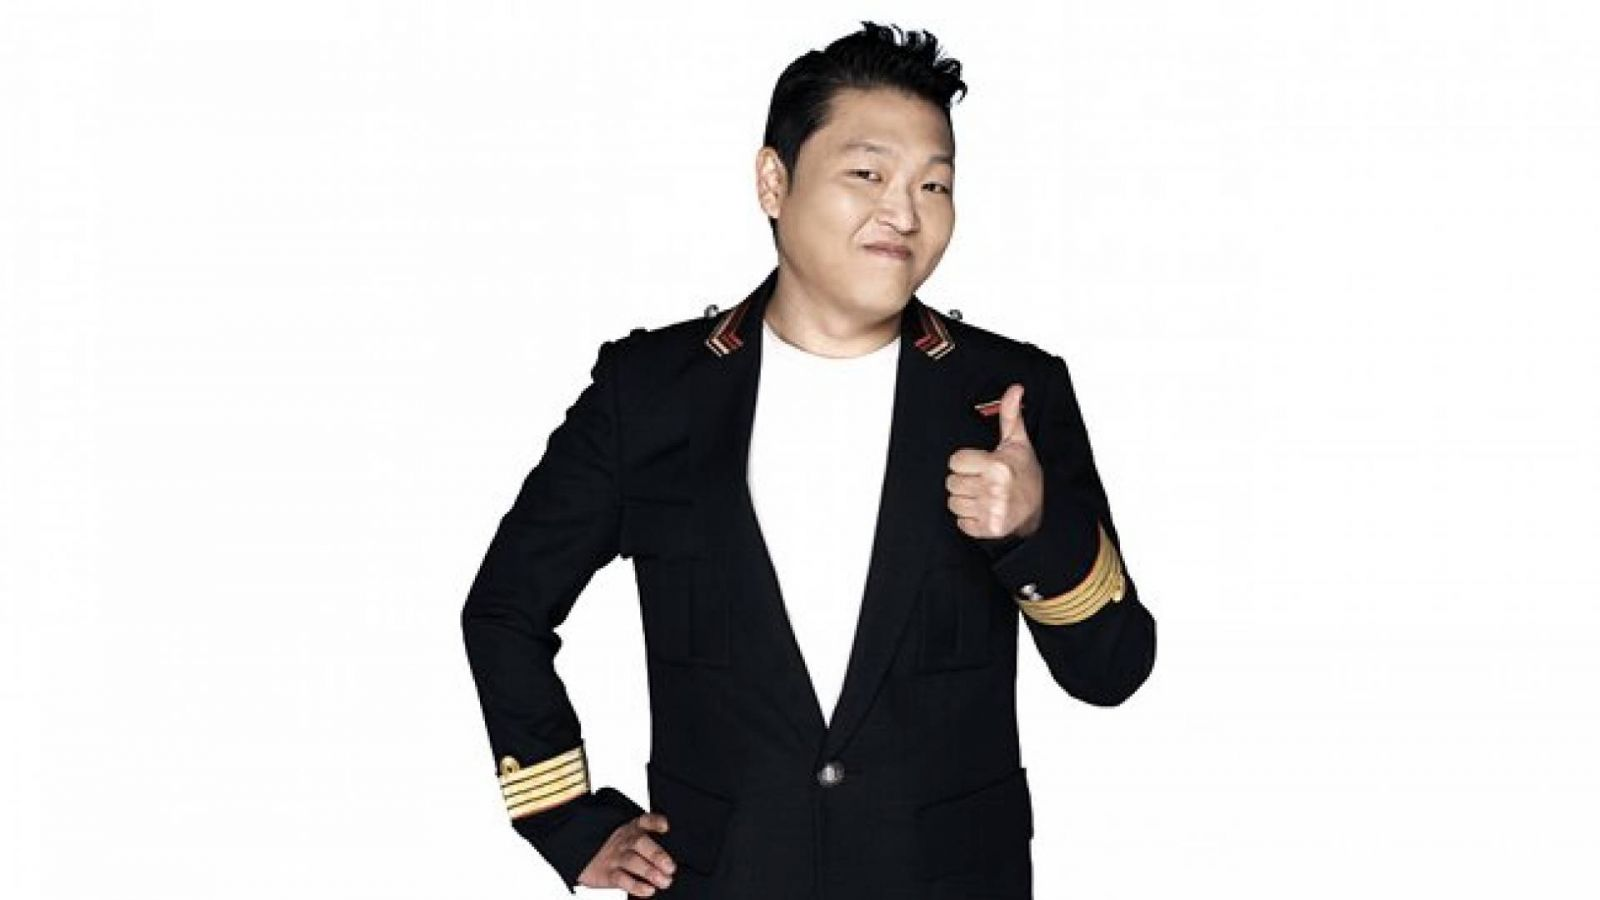 PSY e Super Junior são indicados para o MTV EMA 2012 © YG Entertainment